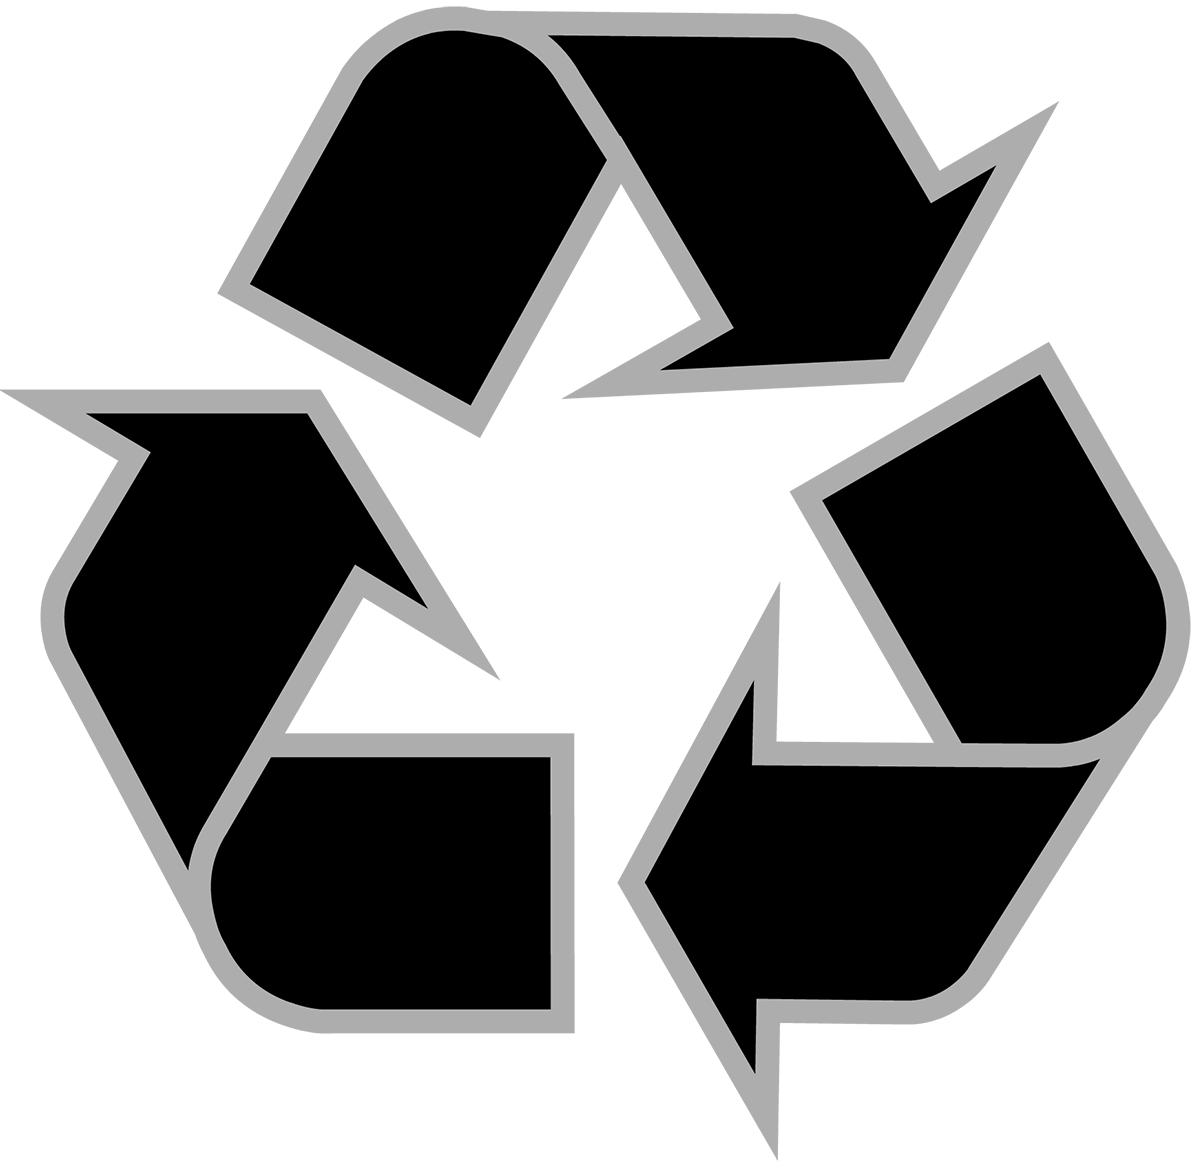 Recycle logo vector png. Download recycling symbol the